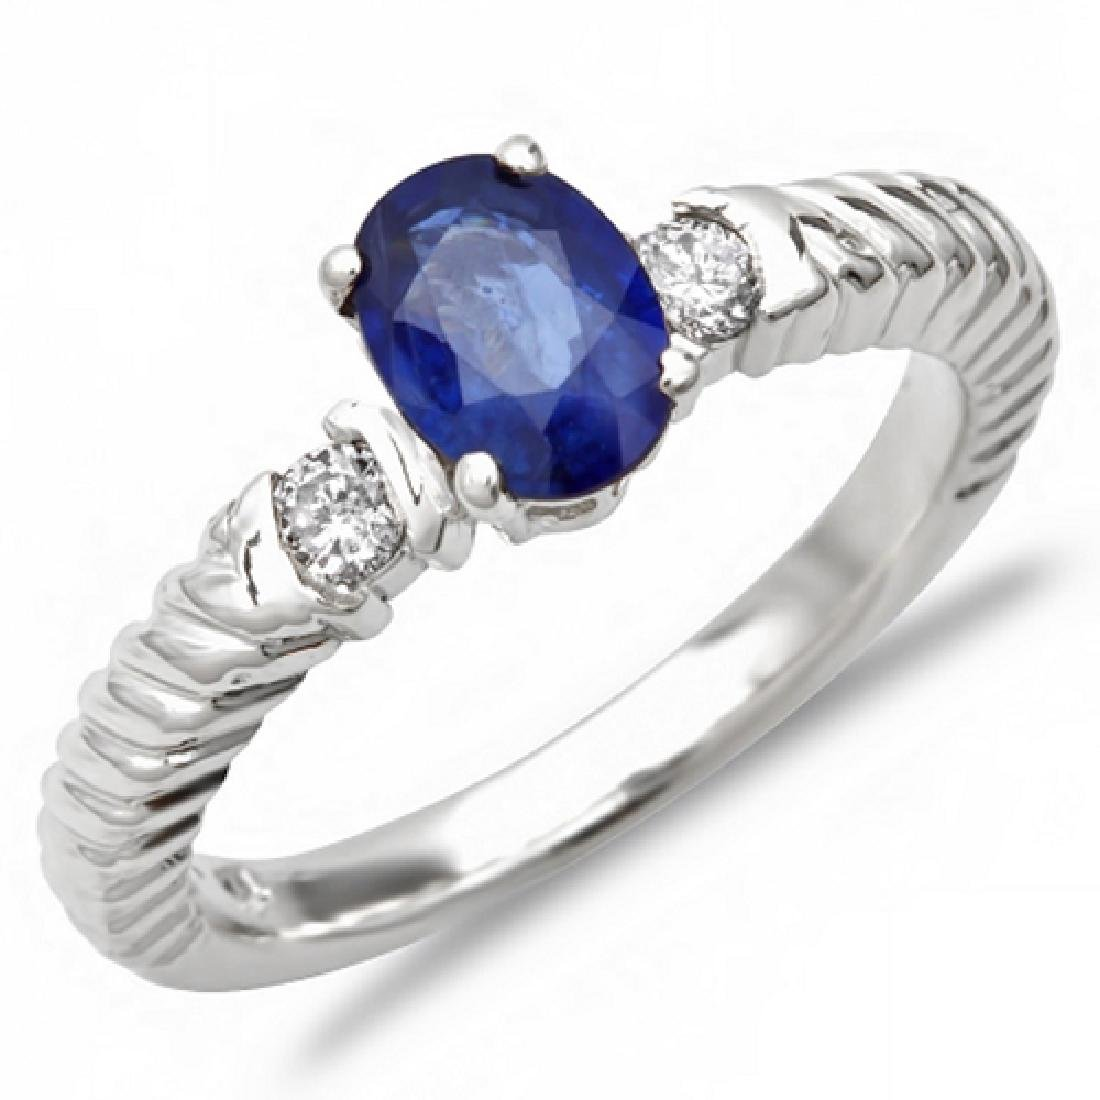 0.80 Carat Natural Sapphire 18K Solid White Gold